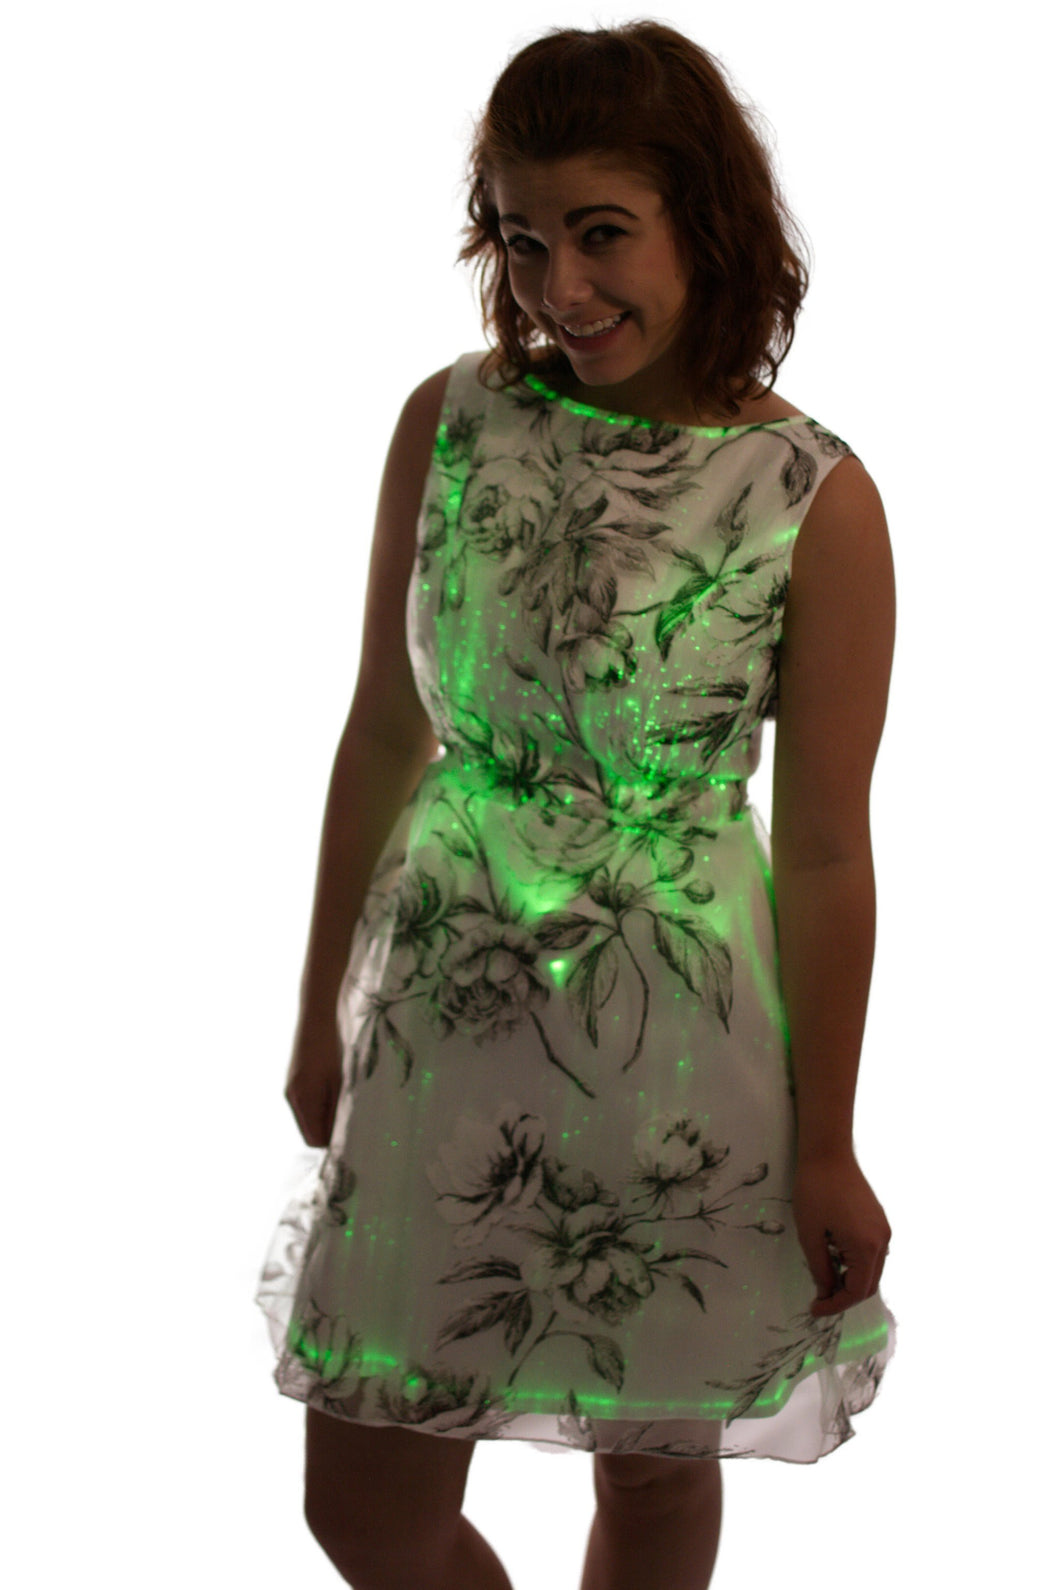 Floral Patterned Lace Fiber Optic Dress - CLOSEOUT PRICE